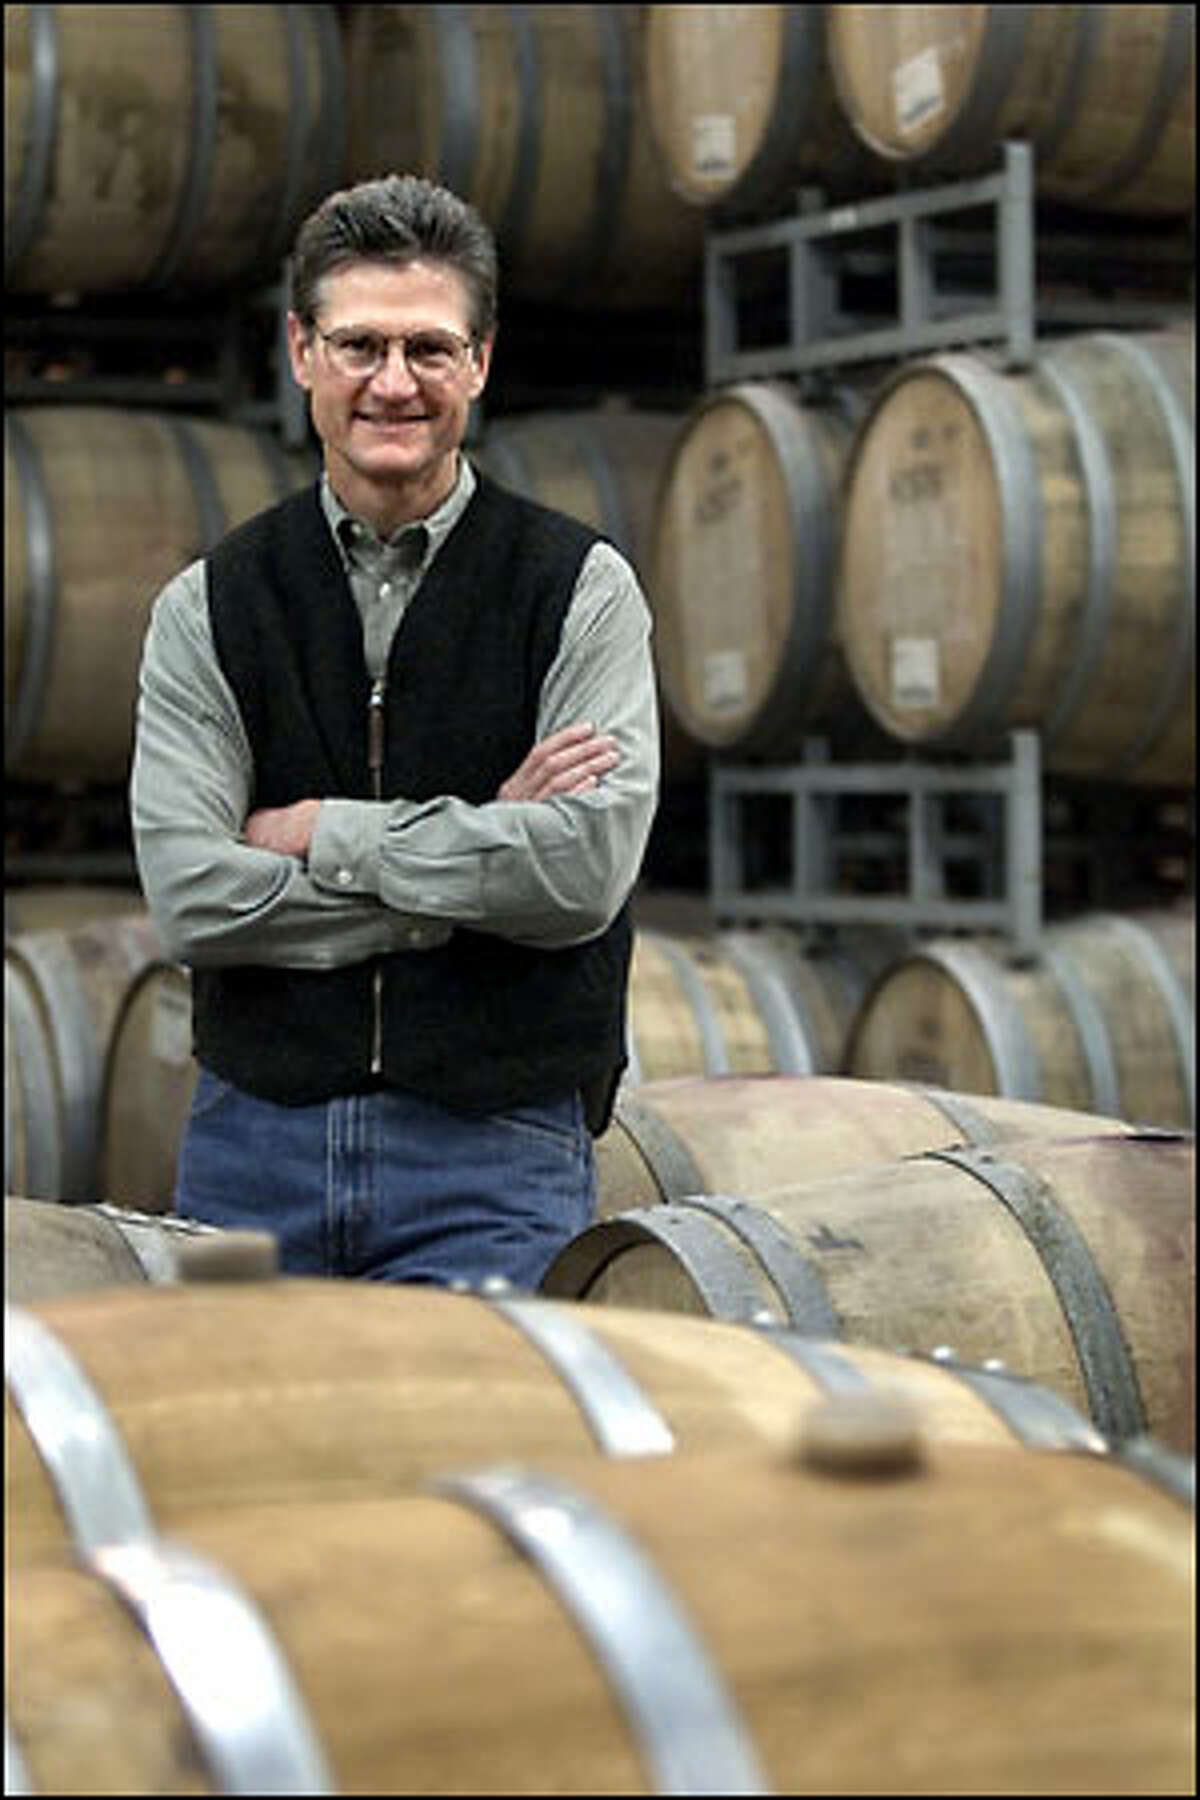 Wade Wolfe, general manager of Hogue Cellars in Prosser, says that despite California wineries lowering their wine prices because of the economic downturn, Hogue has no plans to drop its prices. Higher demand may help lift prices.